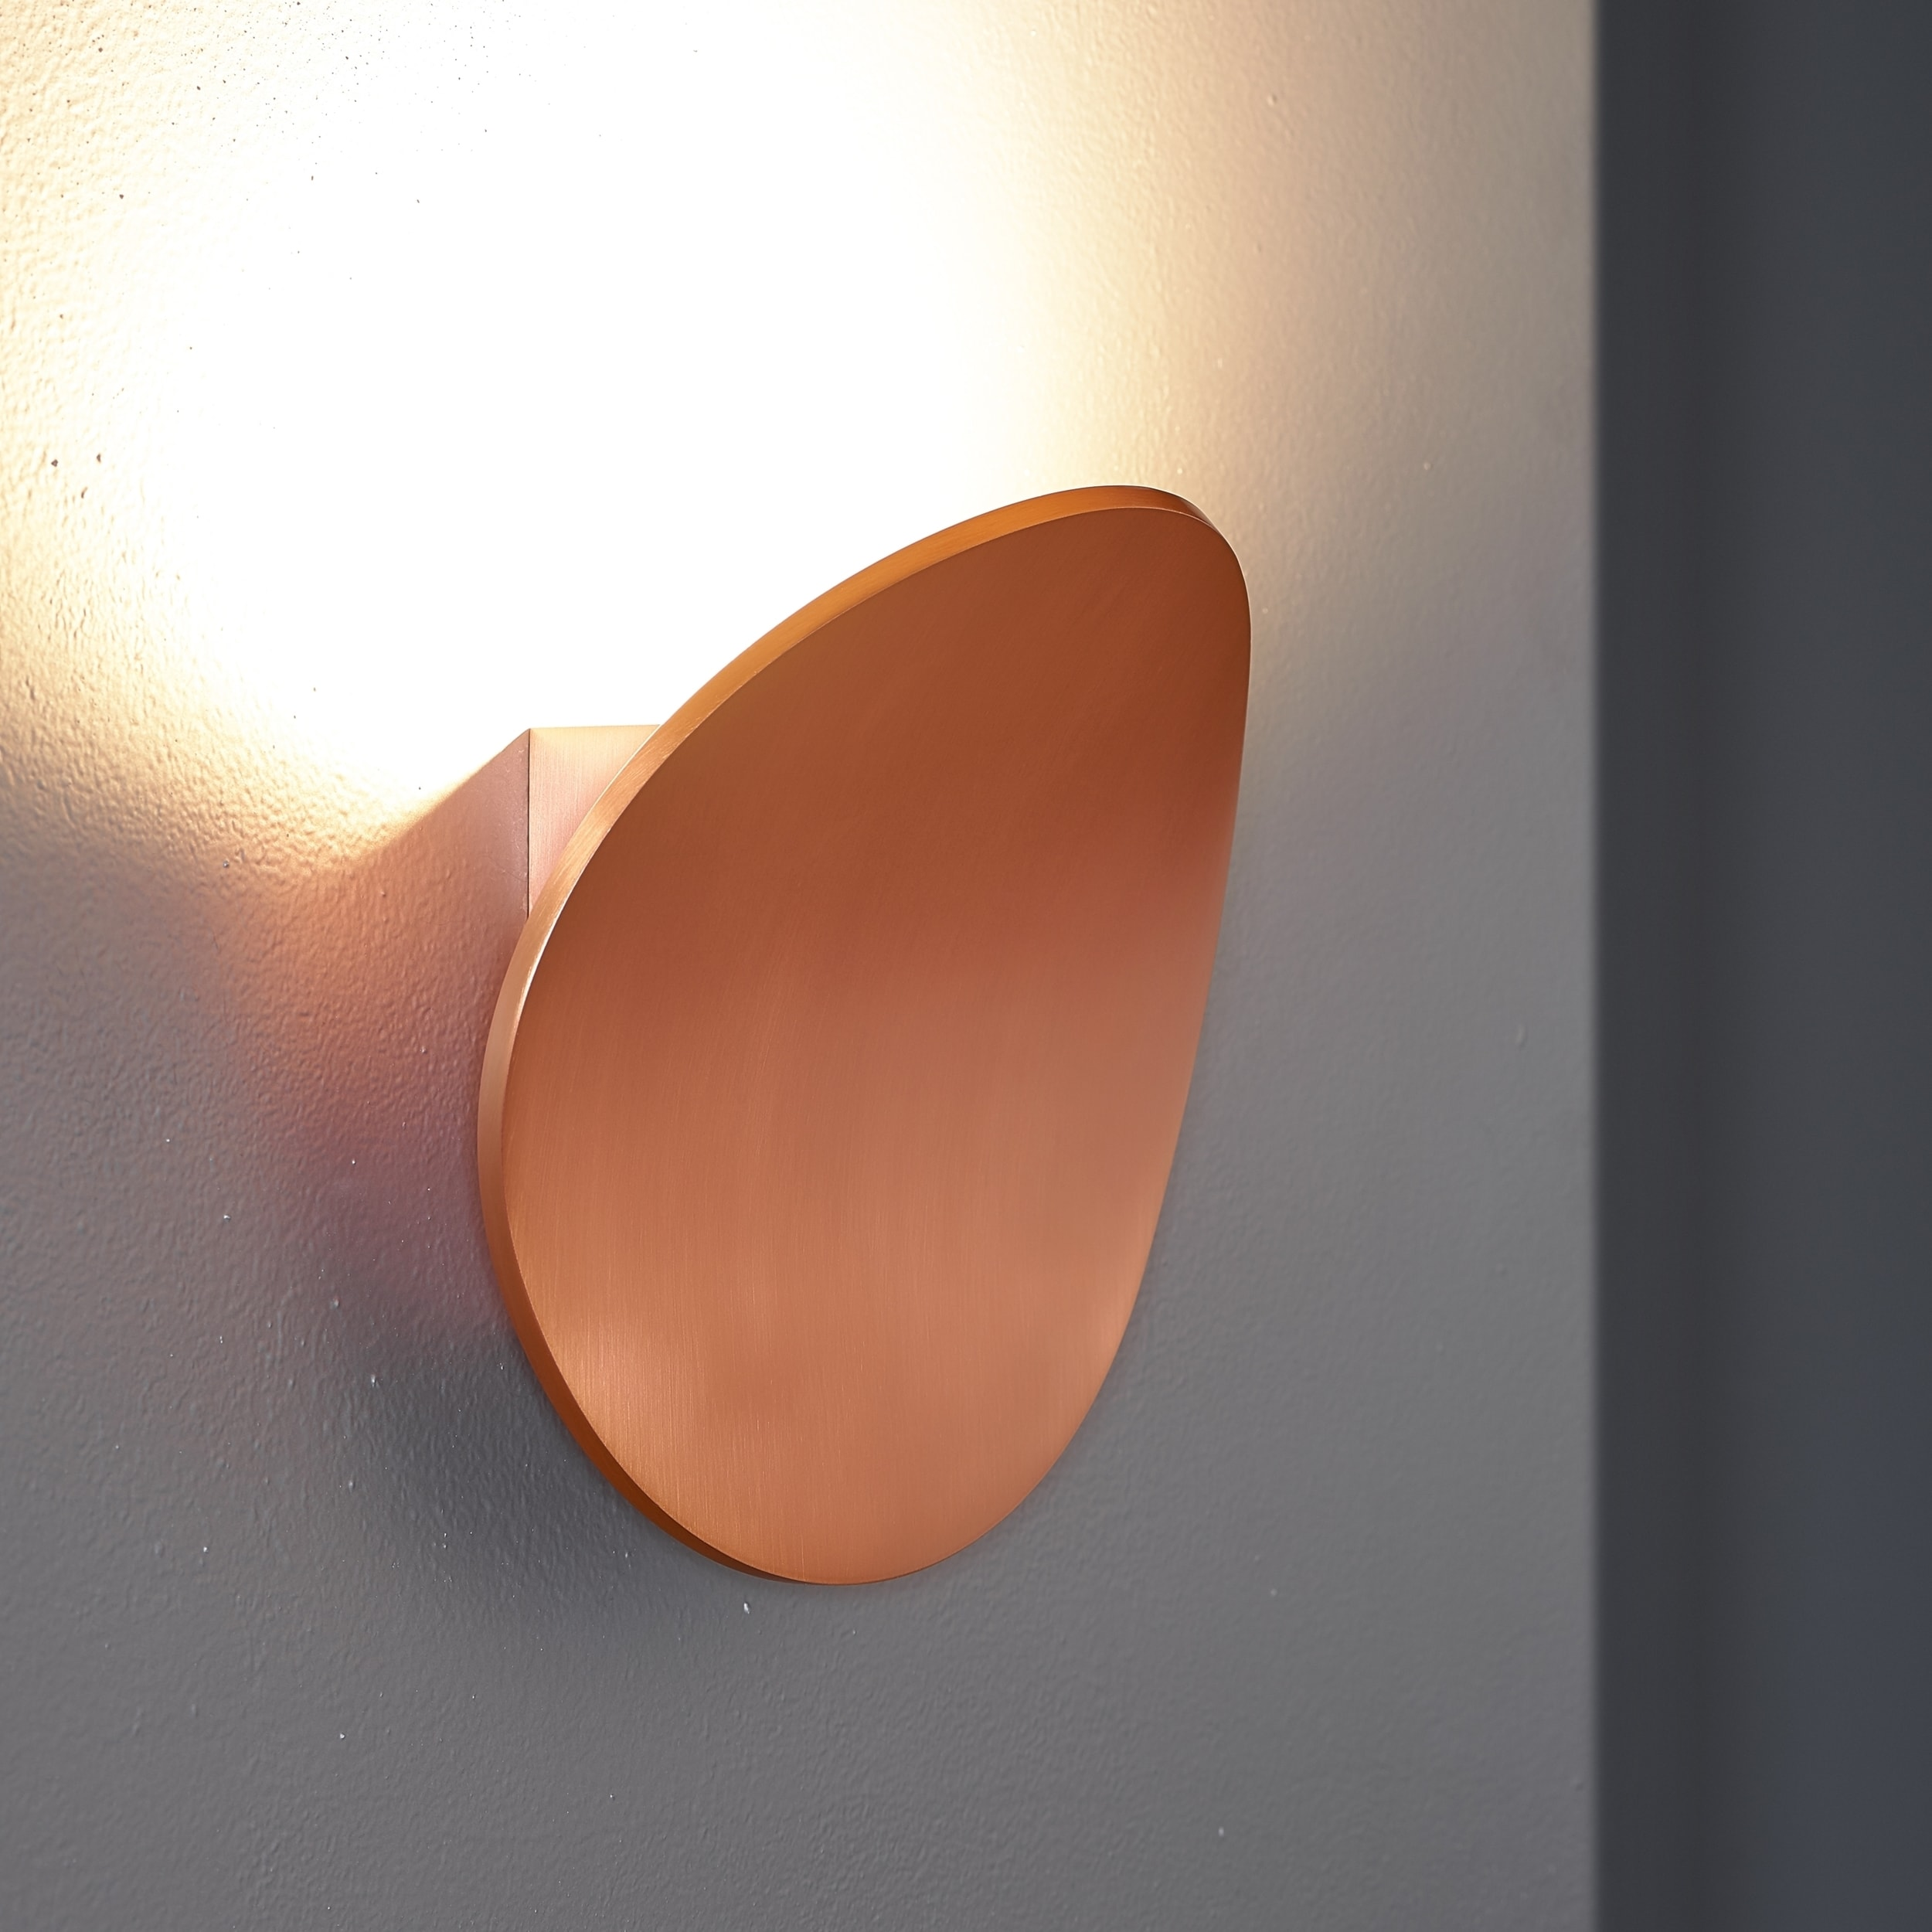 design elk wall sconce htm tones copper lights showroom wiseway florence ky